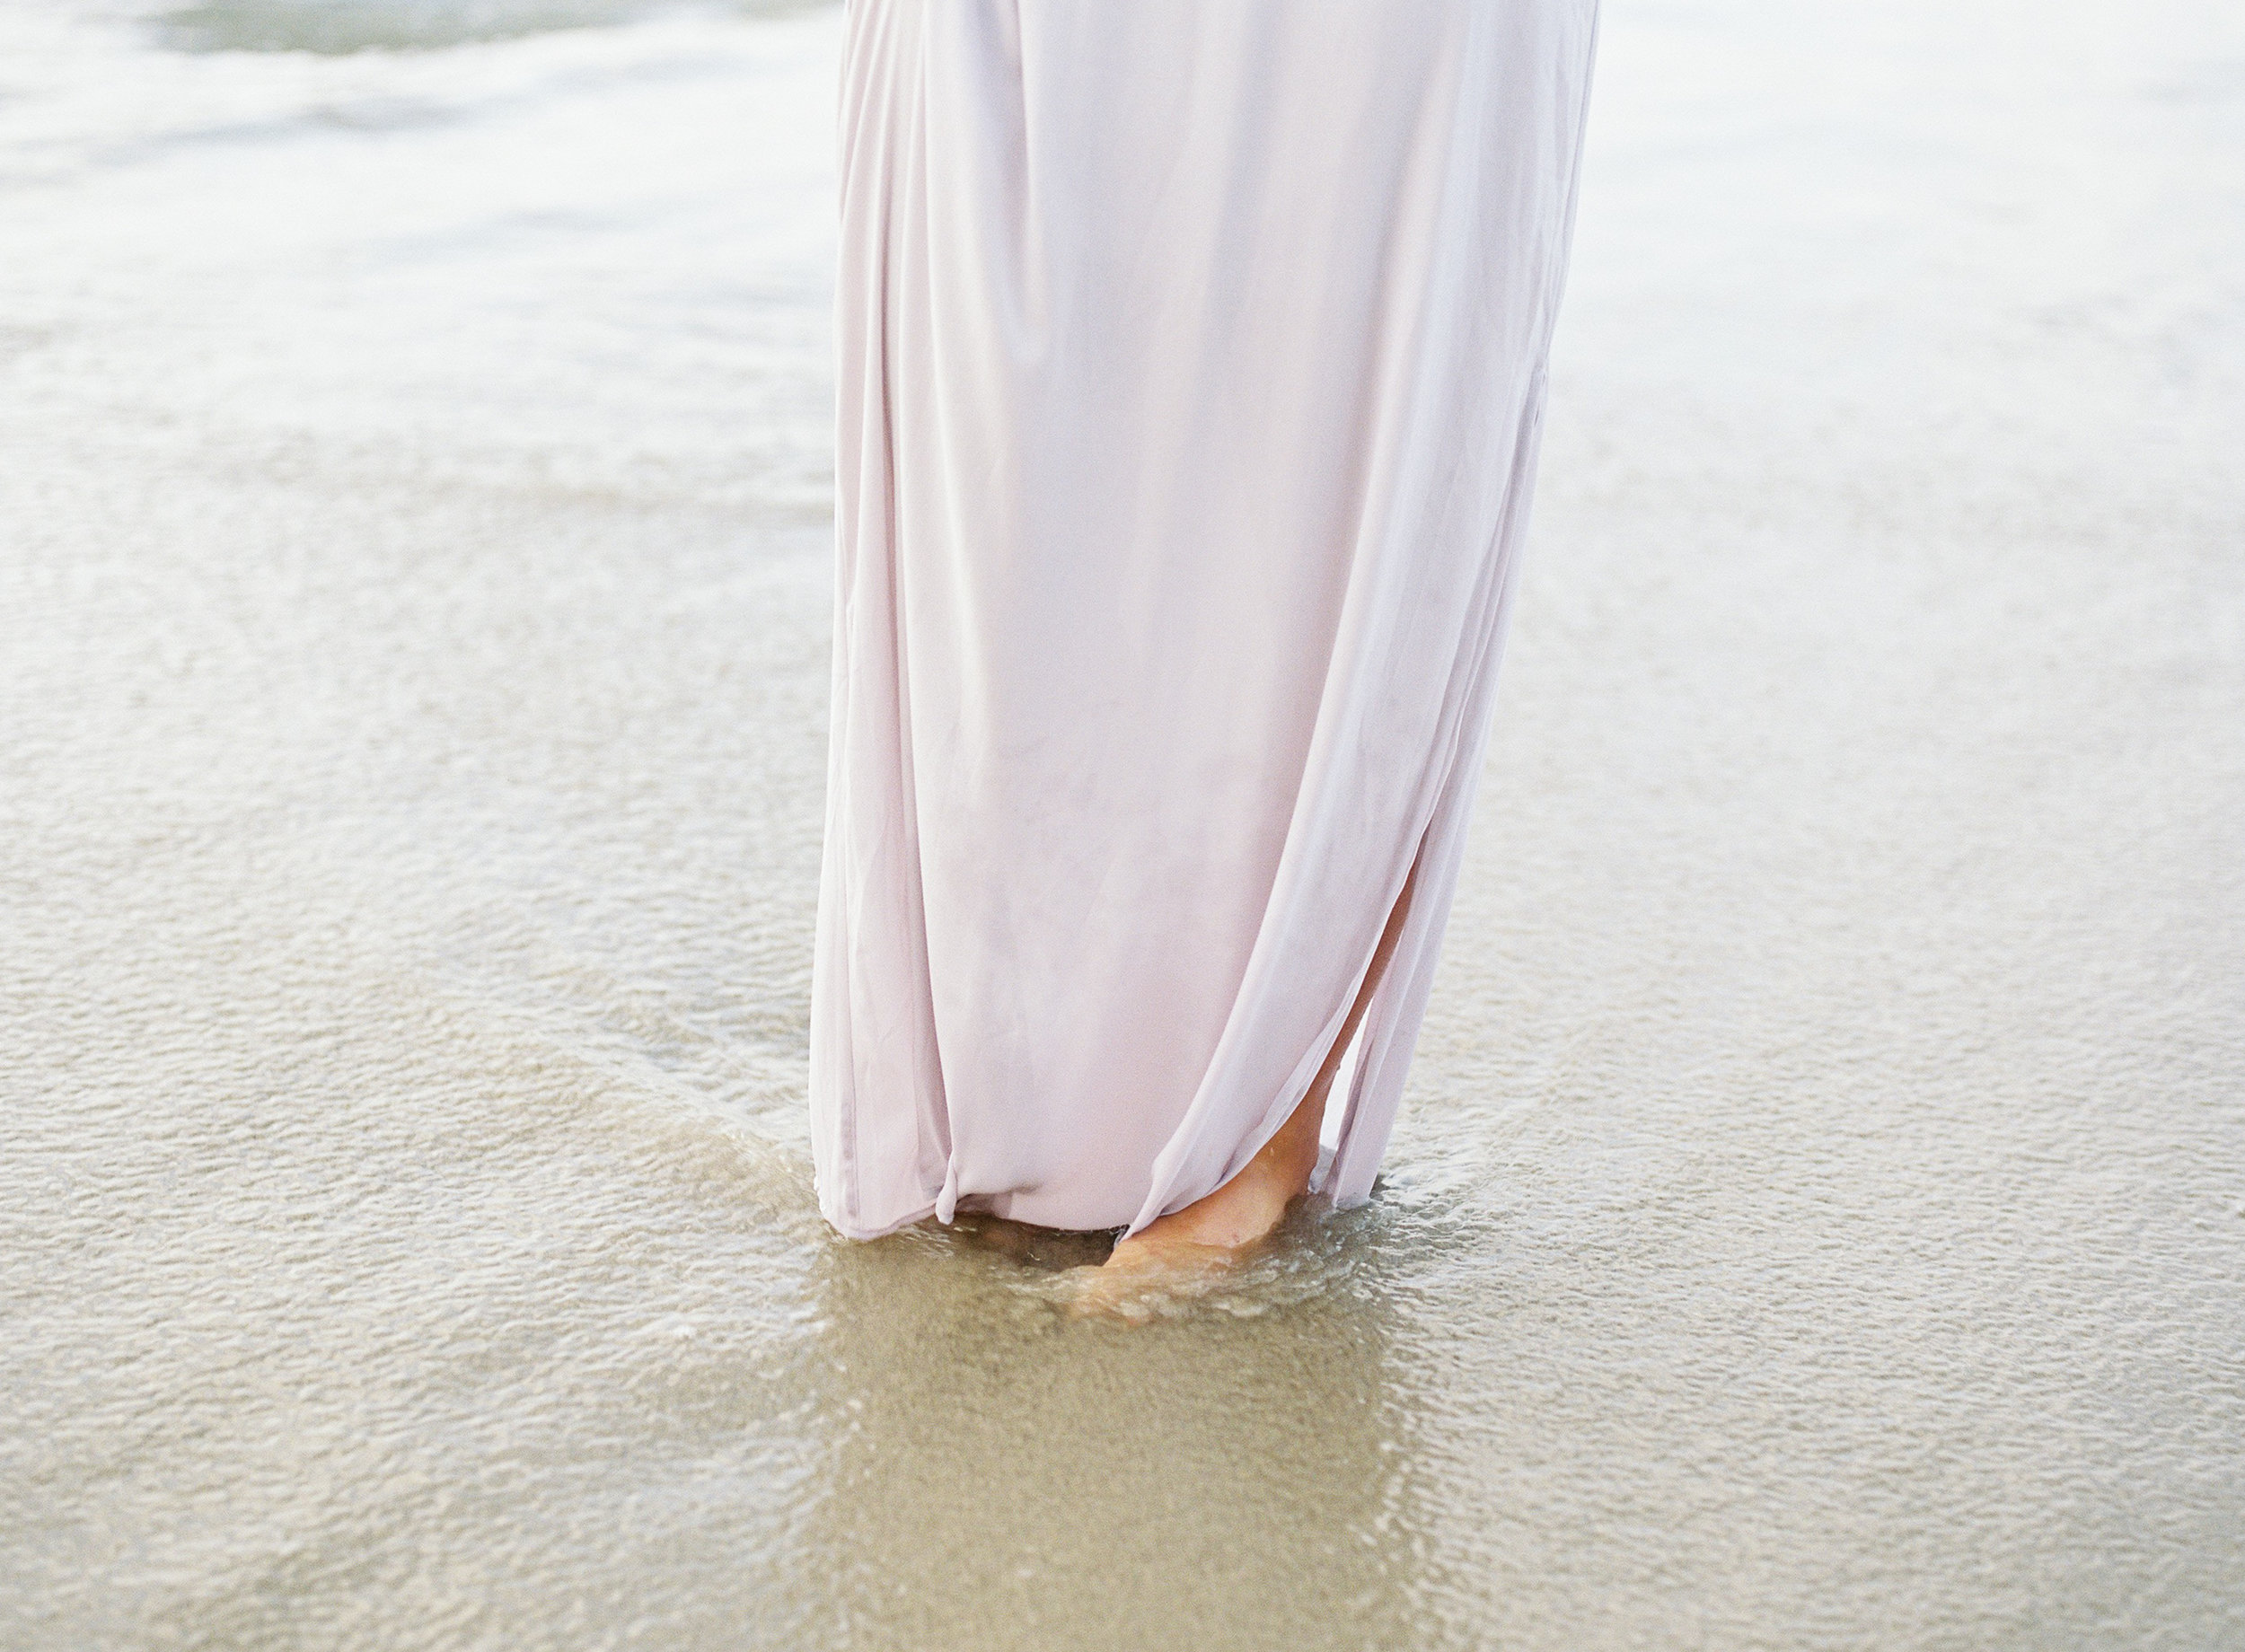 Charlotta - El Matador Beach Malibu - Peaches & Twine Fine Art Film Photography -73.jpg